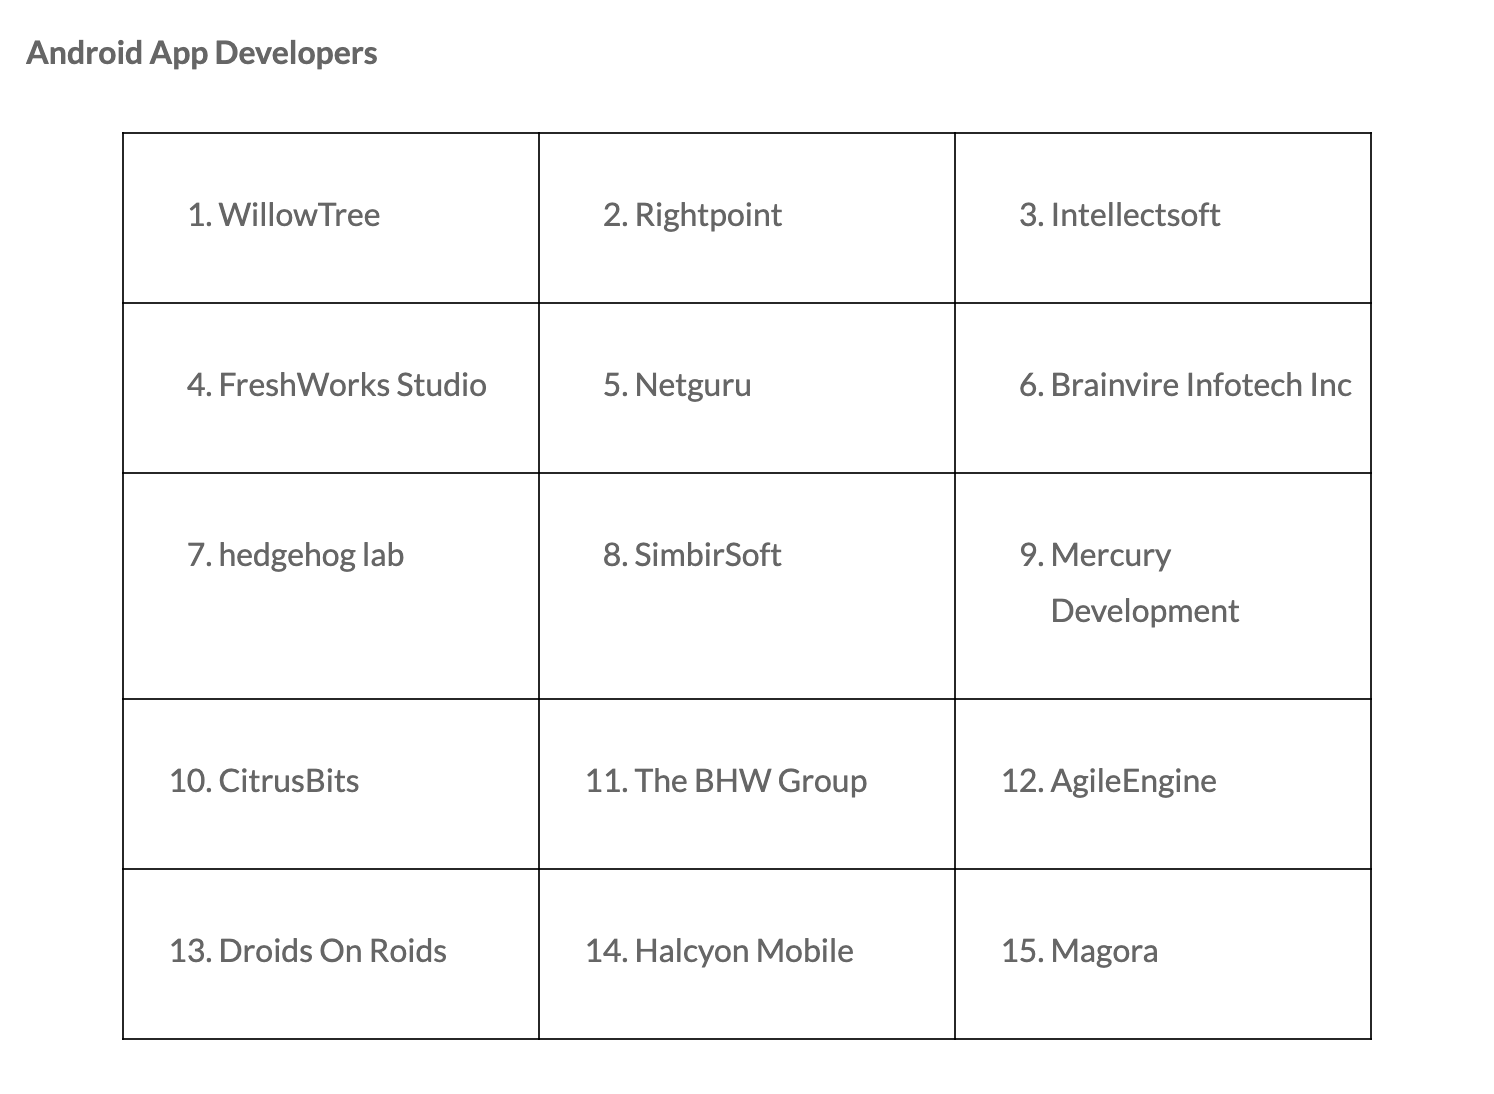 Clutch's list of the Top 15 Android Developers